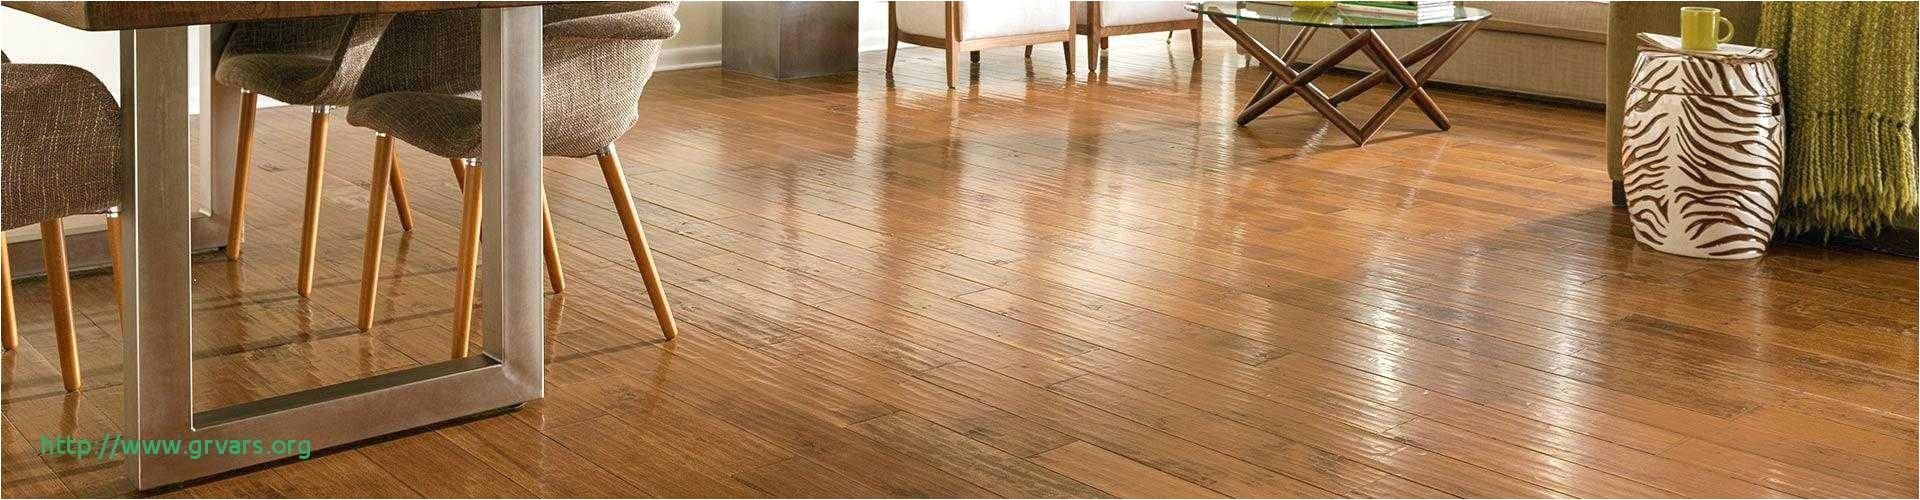 hickory flooring pros and cons top search